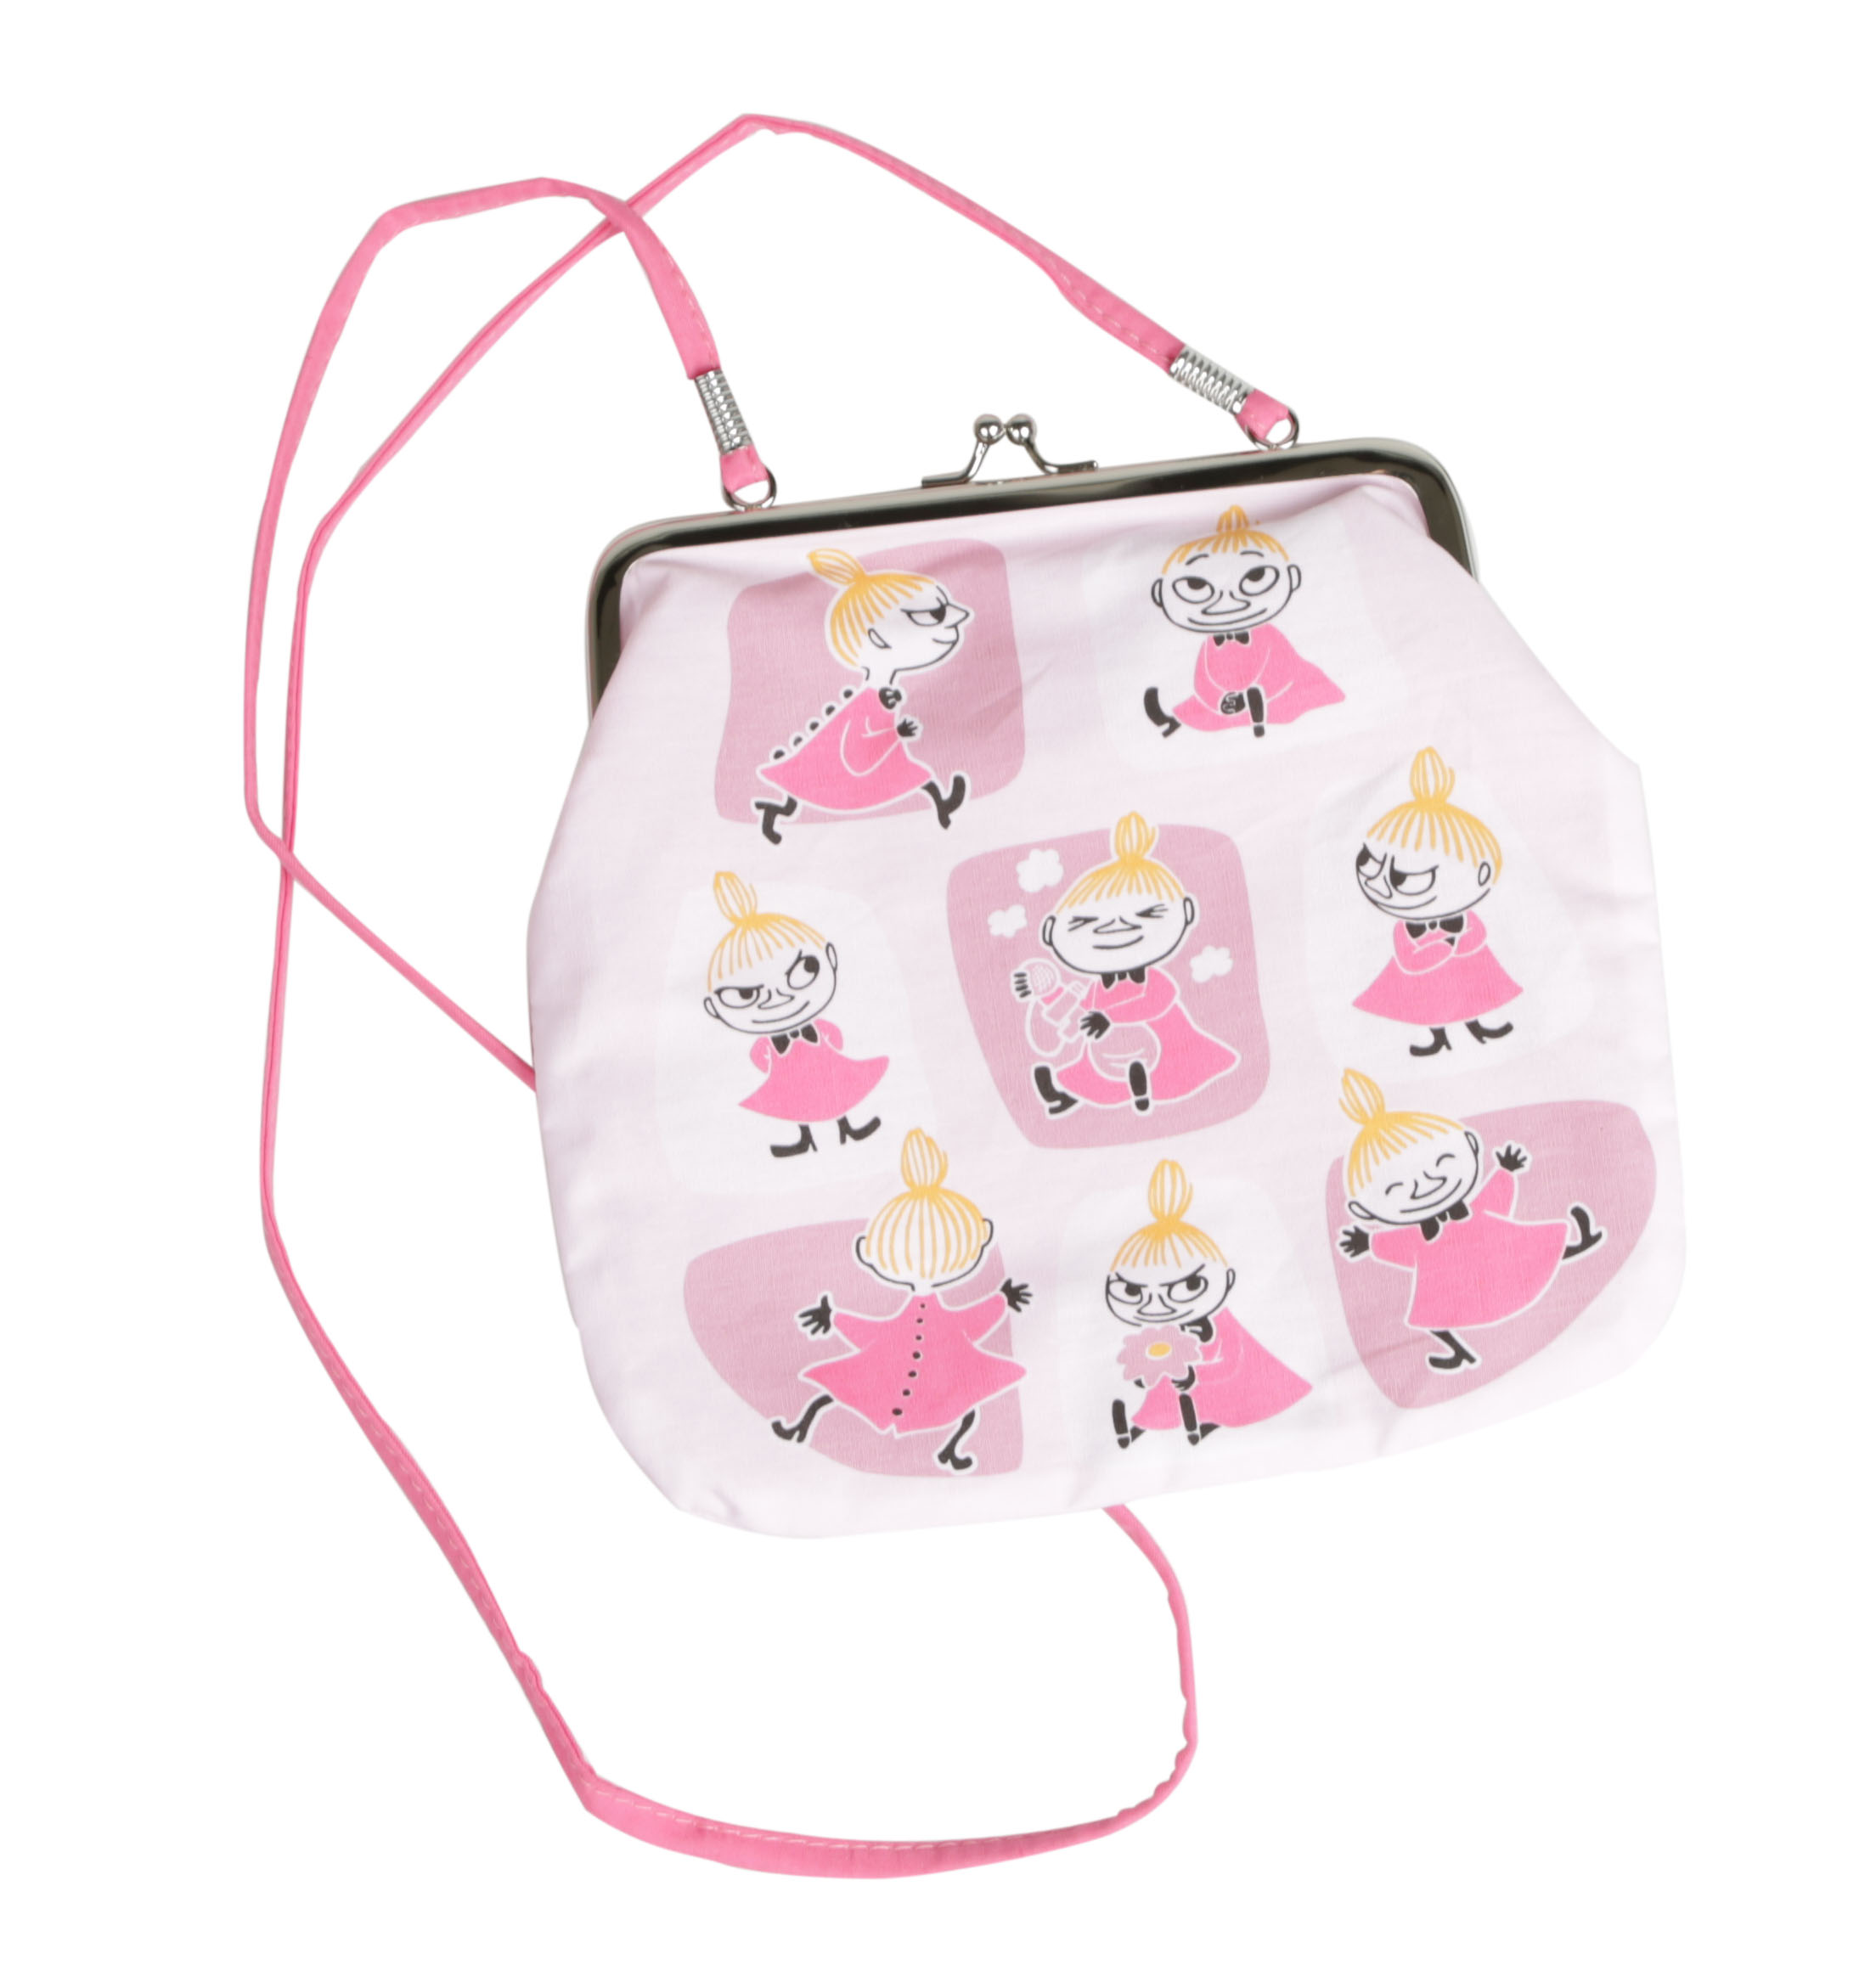 Martinex Little My Clip Purse Sholderst rose